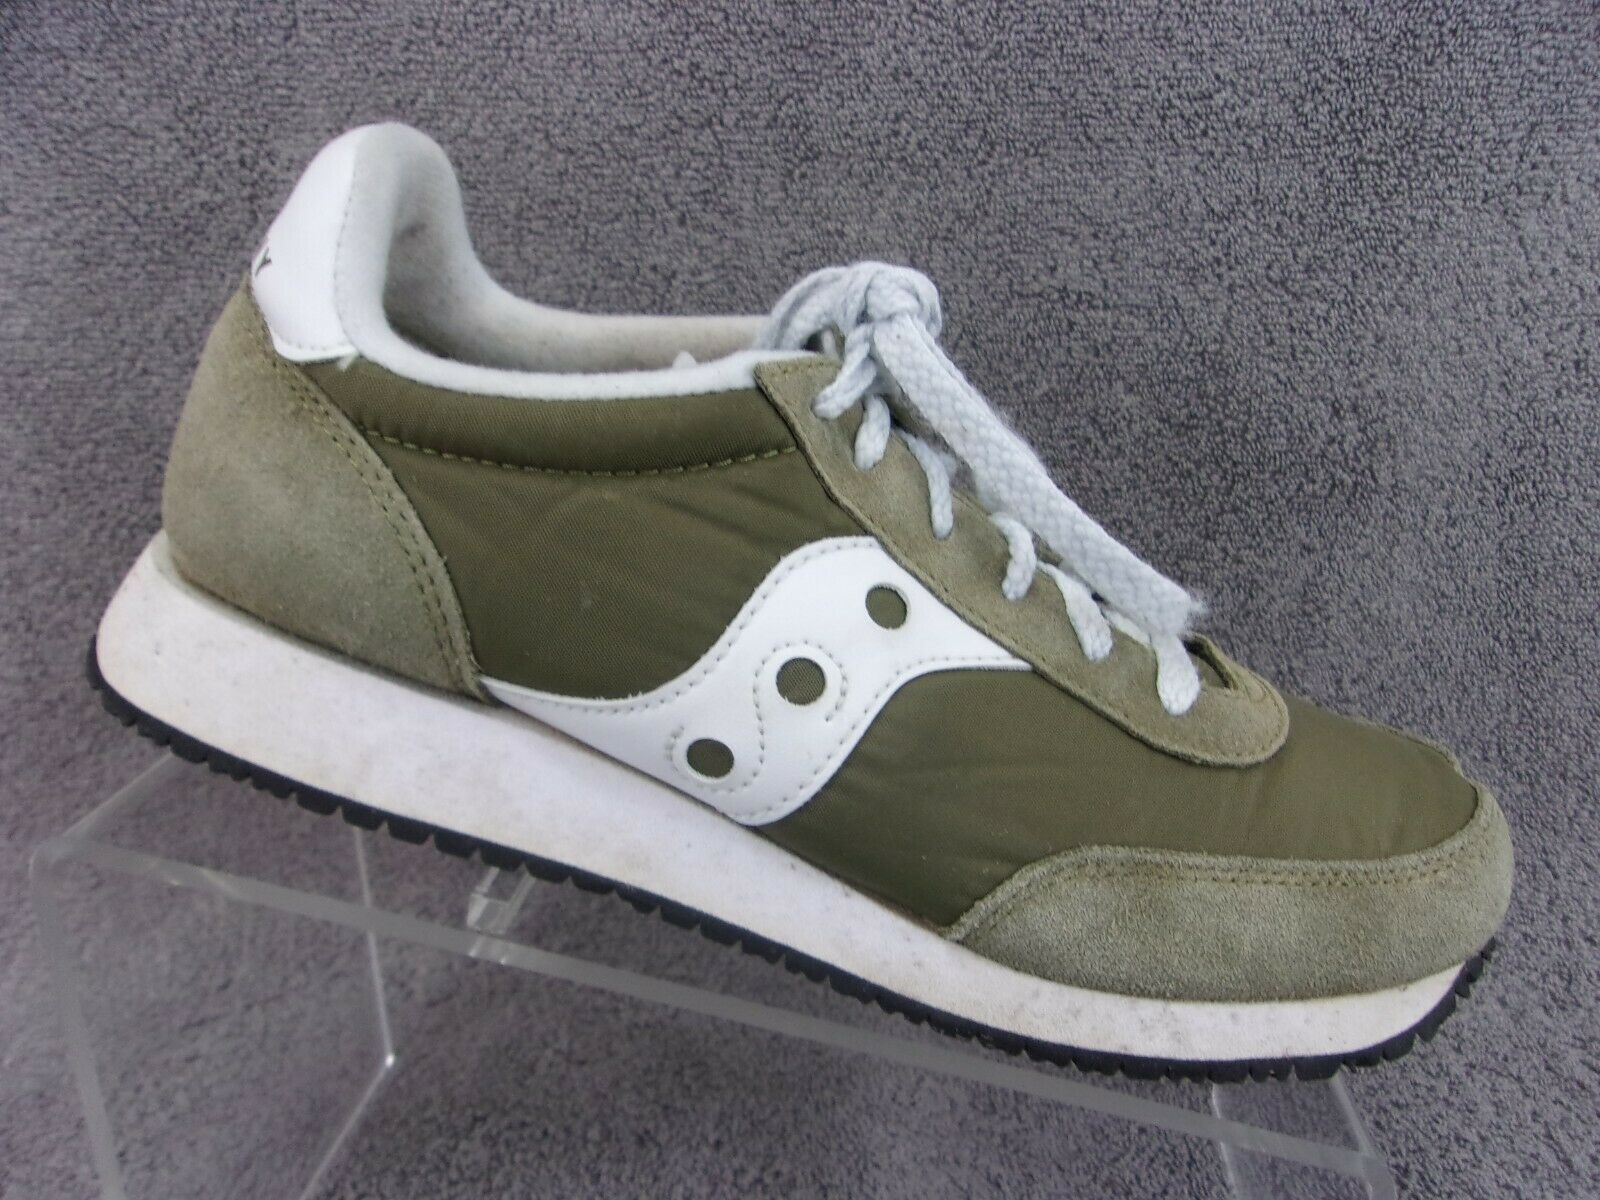 Saucony logan mv olive green white athletic running shoe womens US8.5 EU40